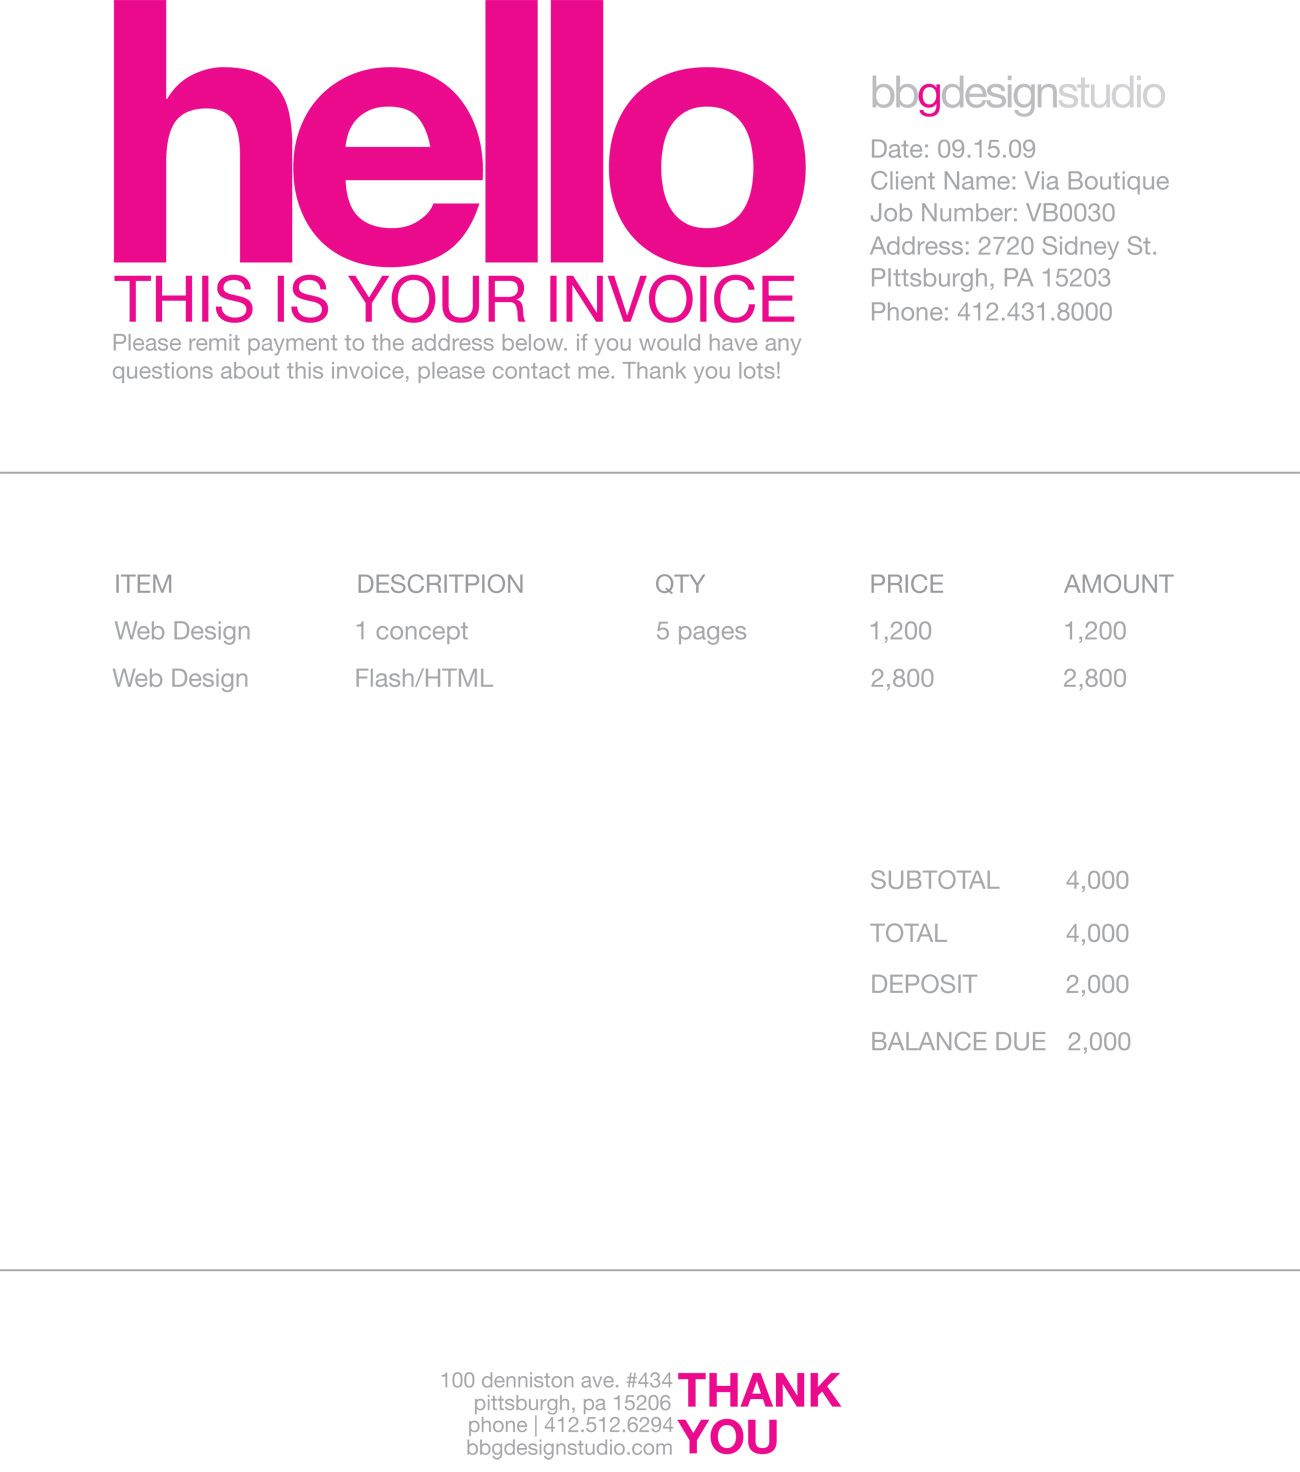 Ultrablogus  Winning  Images About Invoice Design On Pinterest With Glamorous Invoice Template Word Free Besides Free Contractor Invoice Template Furthermore Google Doc Invoice With Beauteous Unpaid Invoice Also How To Send Invoice Paypal In Addition Invoice Cost And Job Invoices As Well As Computer Repair Invoice Additionally Water Damage Invoice Sample From Pinterestcom With Ultrablogus  Glamorous  Images About Invoice Design On Pinterest With Beauteous Invoice Template Word Free Besides Free Contractor Invoice Template Furthermore Google Doc Invoice And Winning Unpaid Invoice Also How To Send Invoice Paypal In Addition Invoice Cost From Pinterestcom